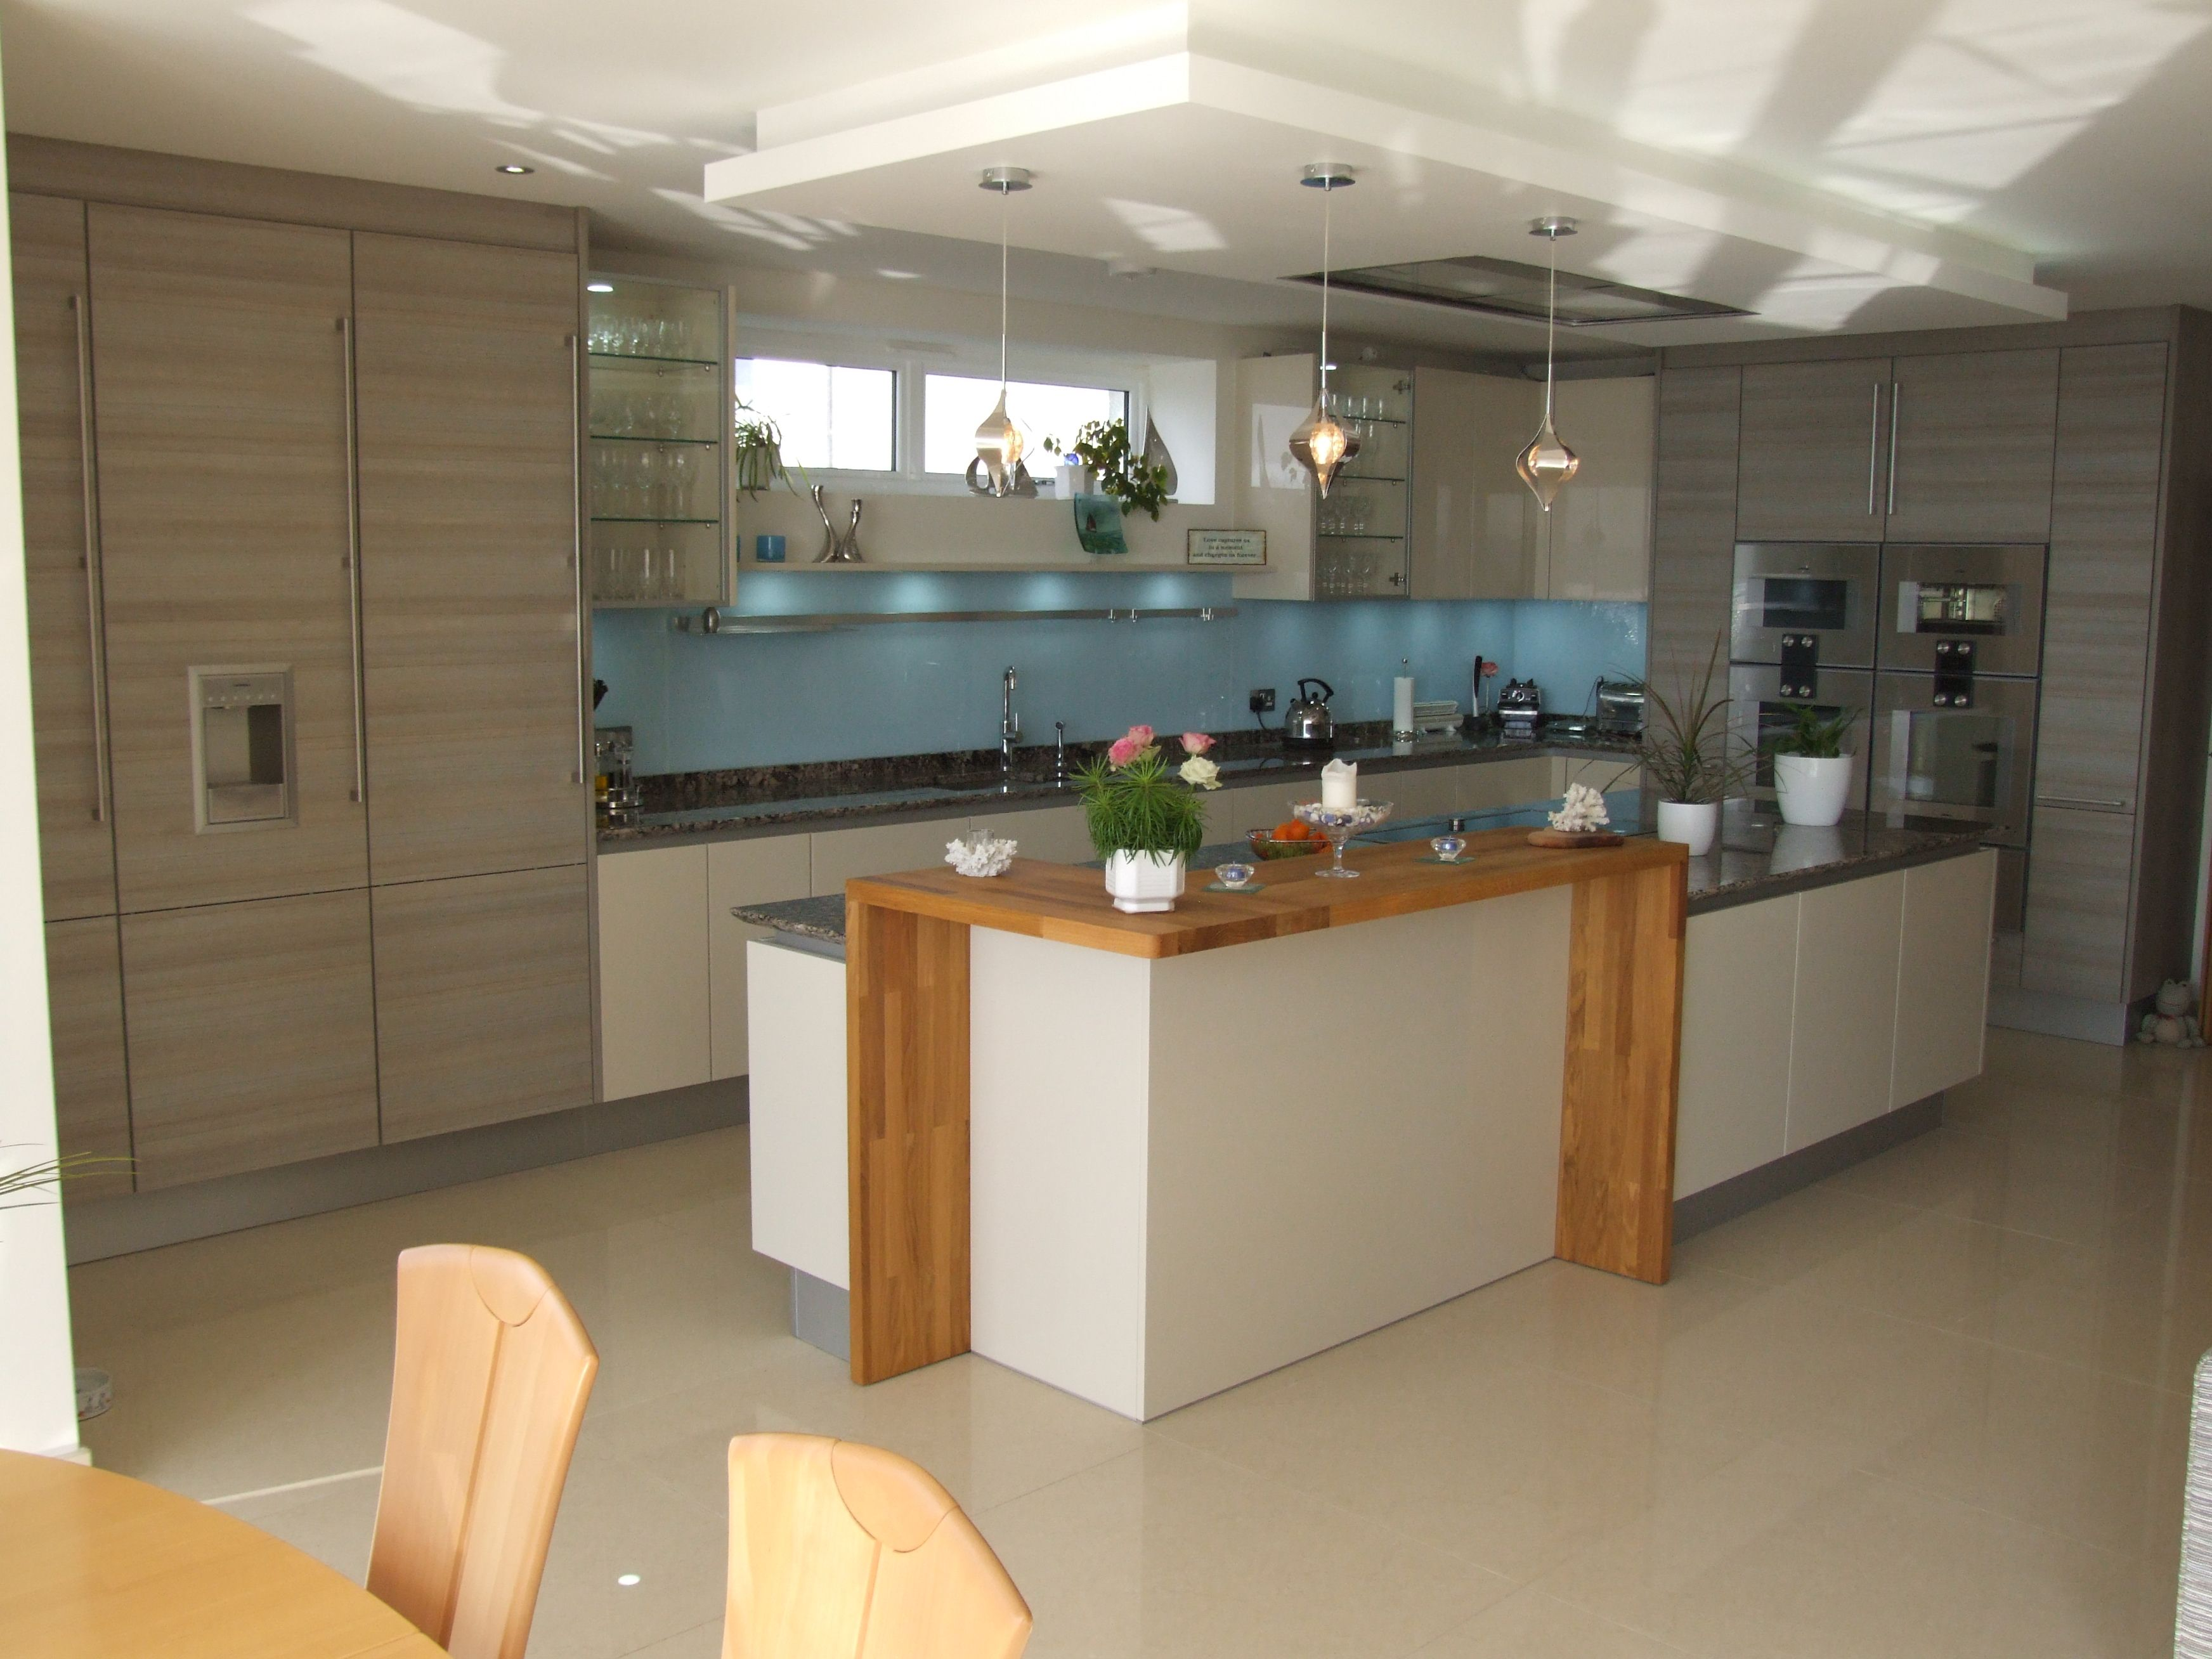 Take A Look At Our Latest Poggenpohl Installation. With High Gloss Sand  Cabinetry, Teak Quartz Tall Units And A Contrasting Spekva Breakfast Bar.